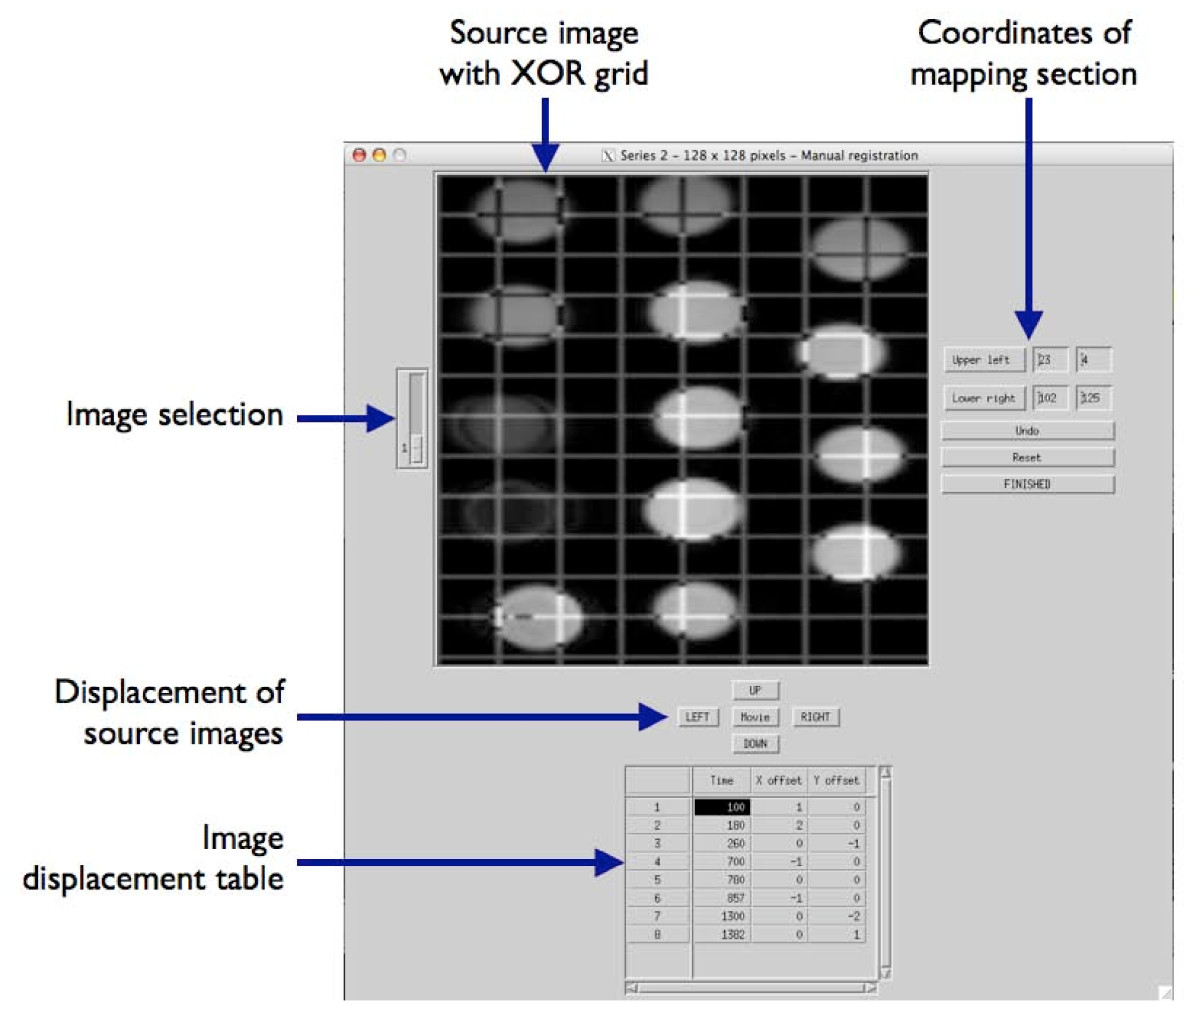 https://static-content.springer.com/image/art%3A10.1186%2F1471-2342-10-16/MediaObjects/12880_2010_Article_93_Fig2_HTML.jpg